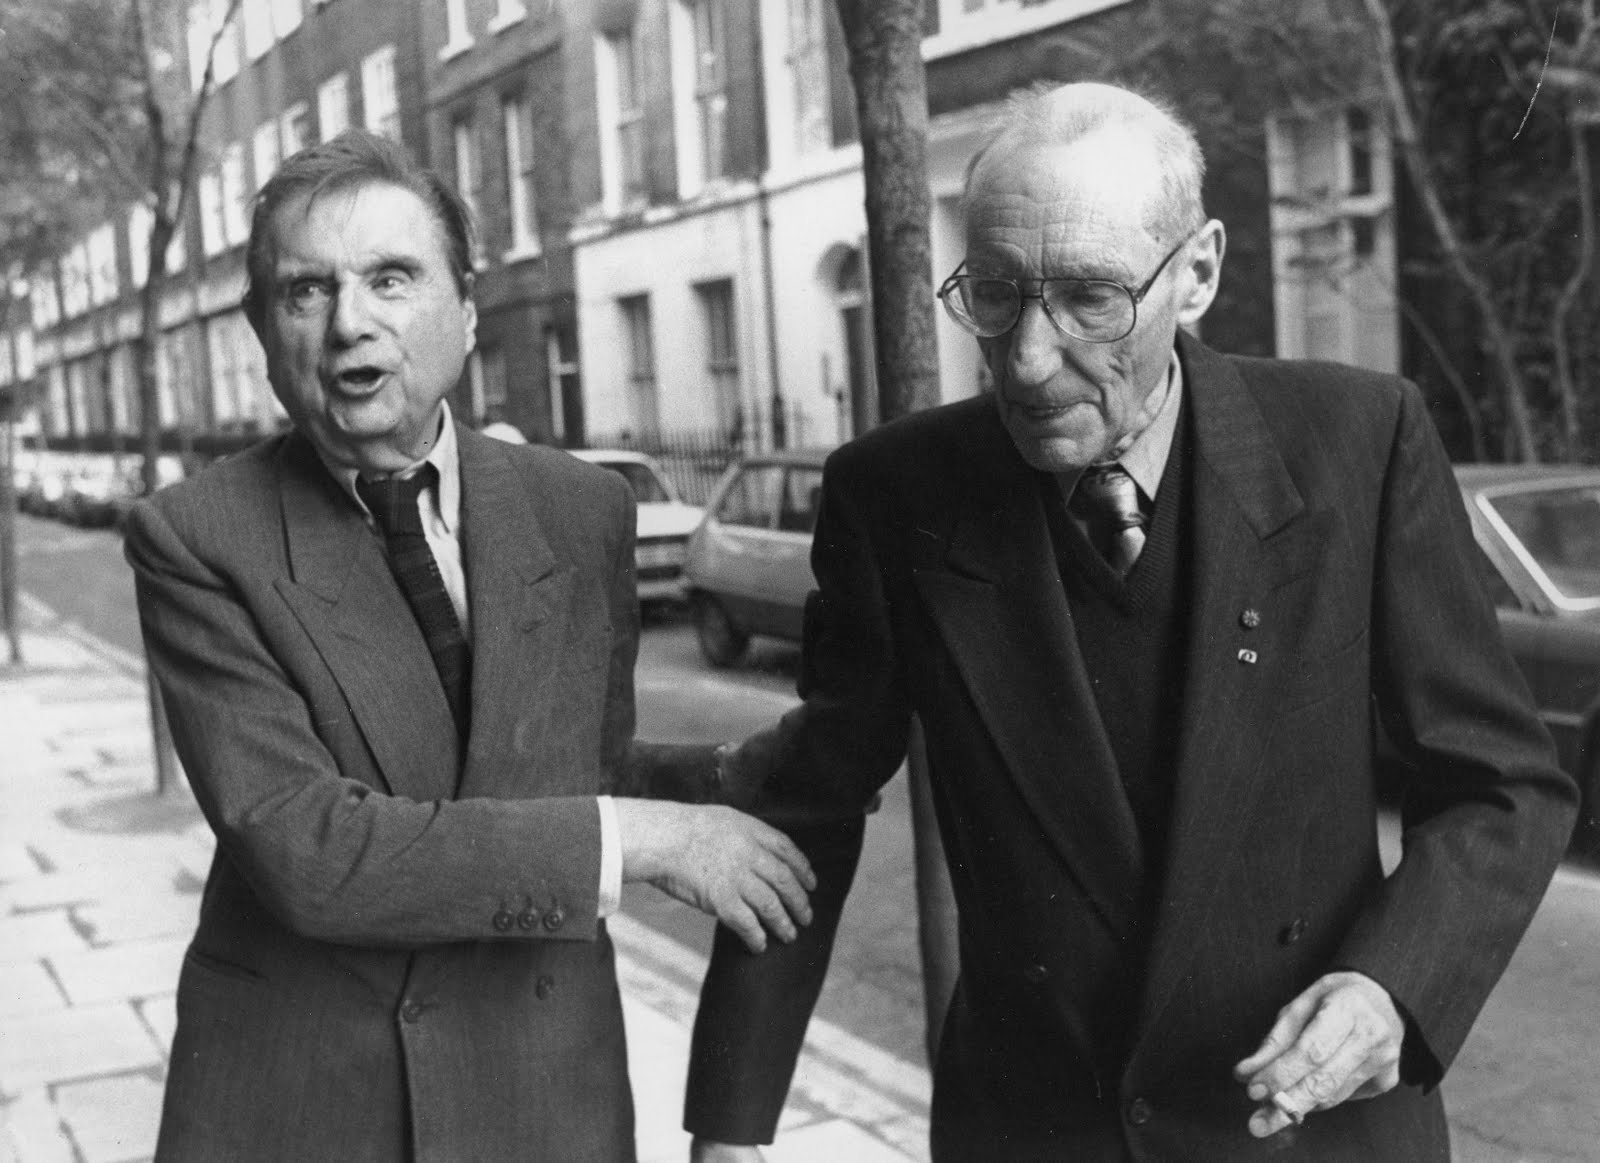 [Francis+Bacon+and+William+Burroughs,+London+1989+(2).jpg]